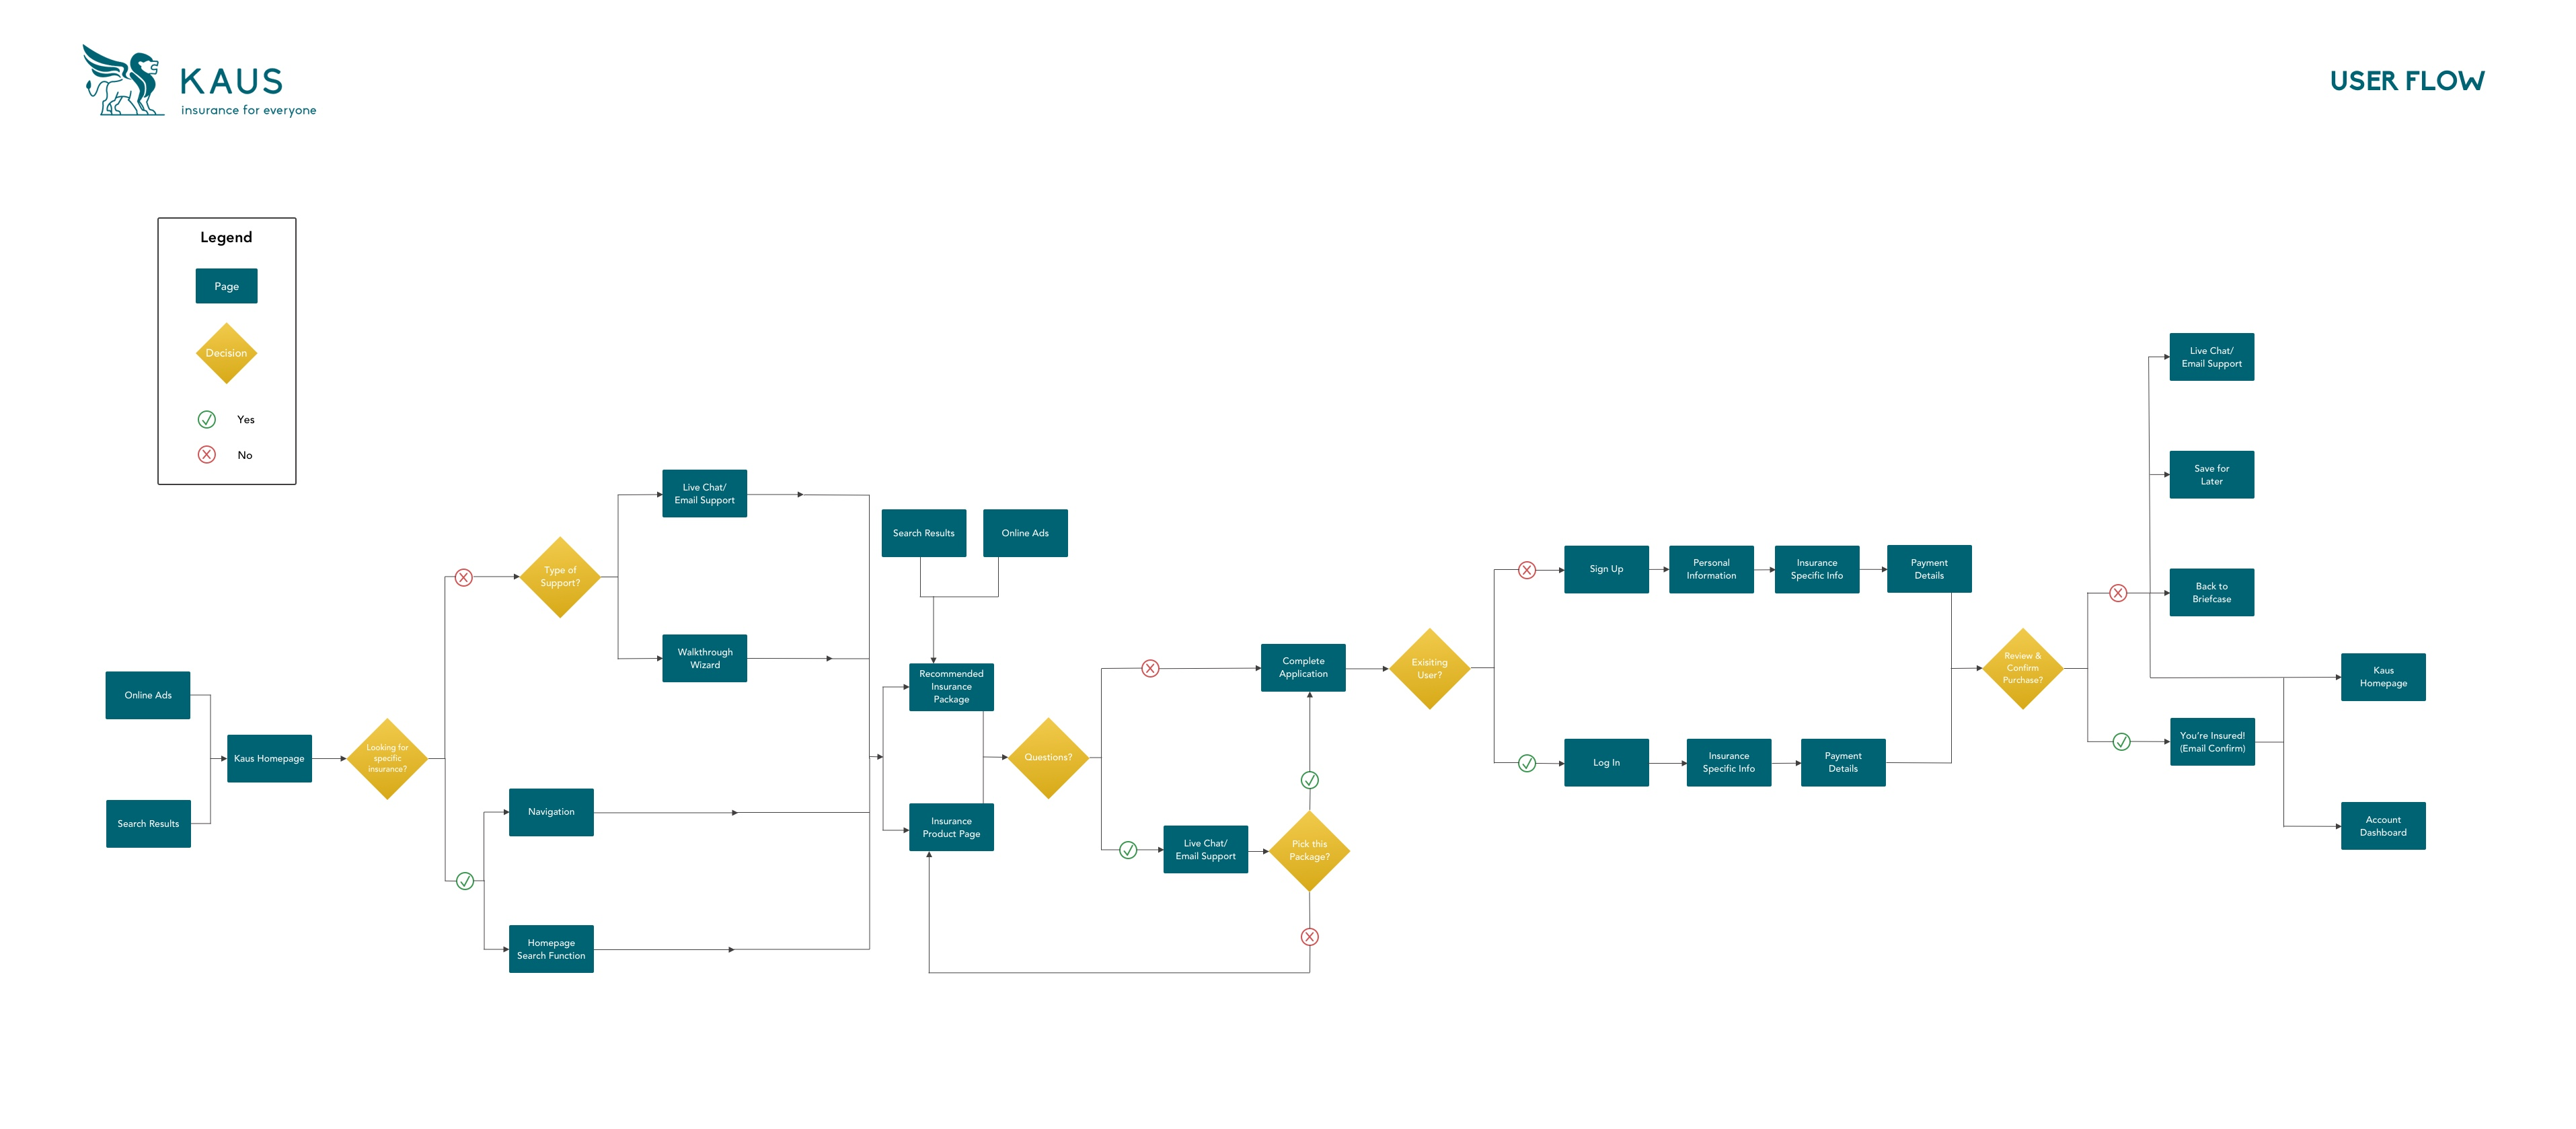 Horizontal User Flow for Kaus